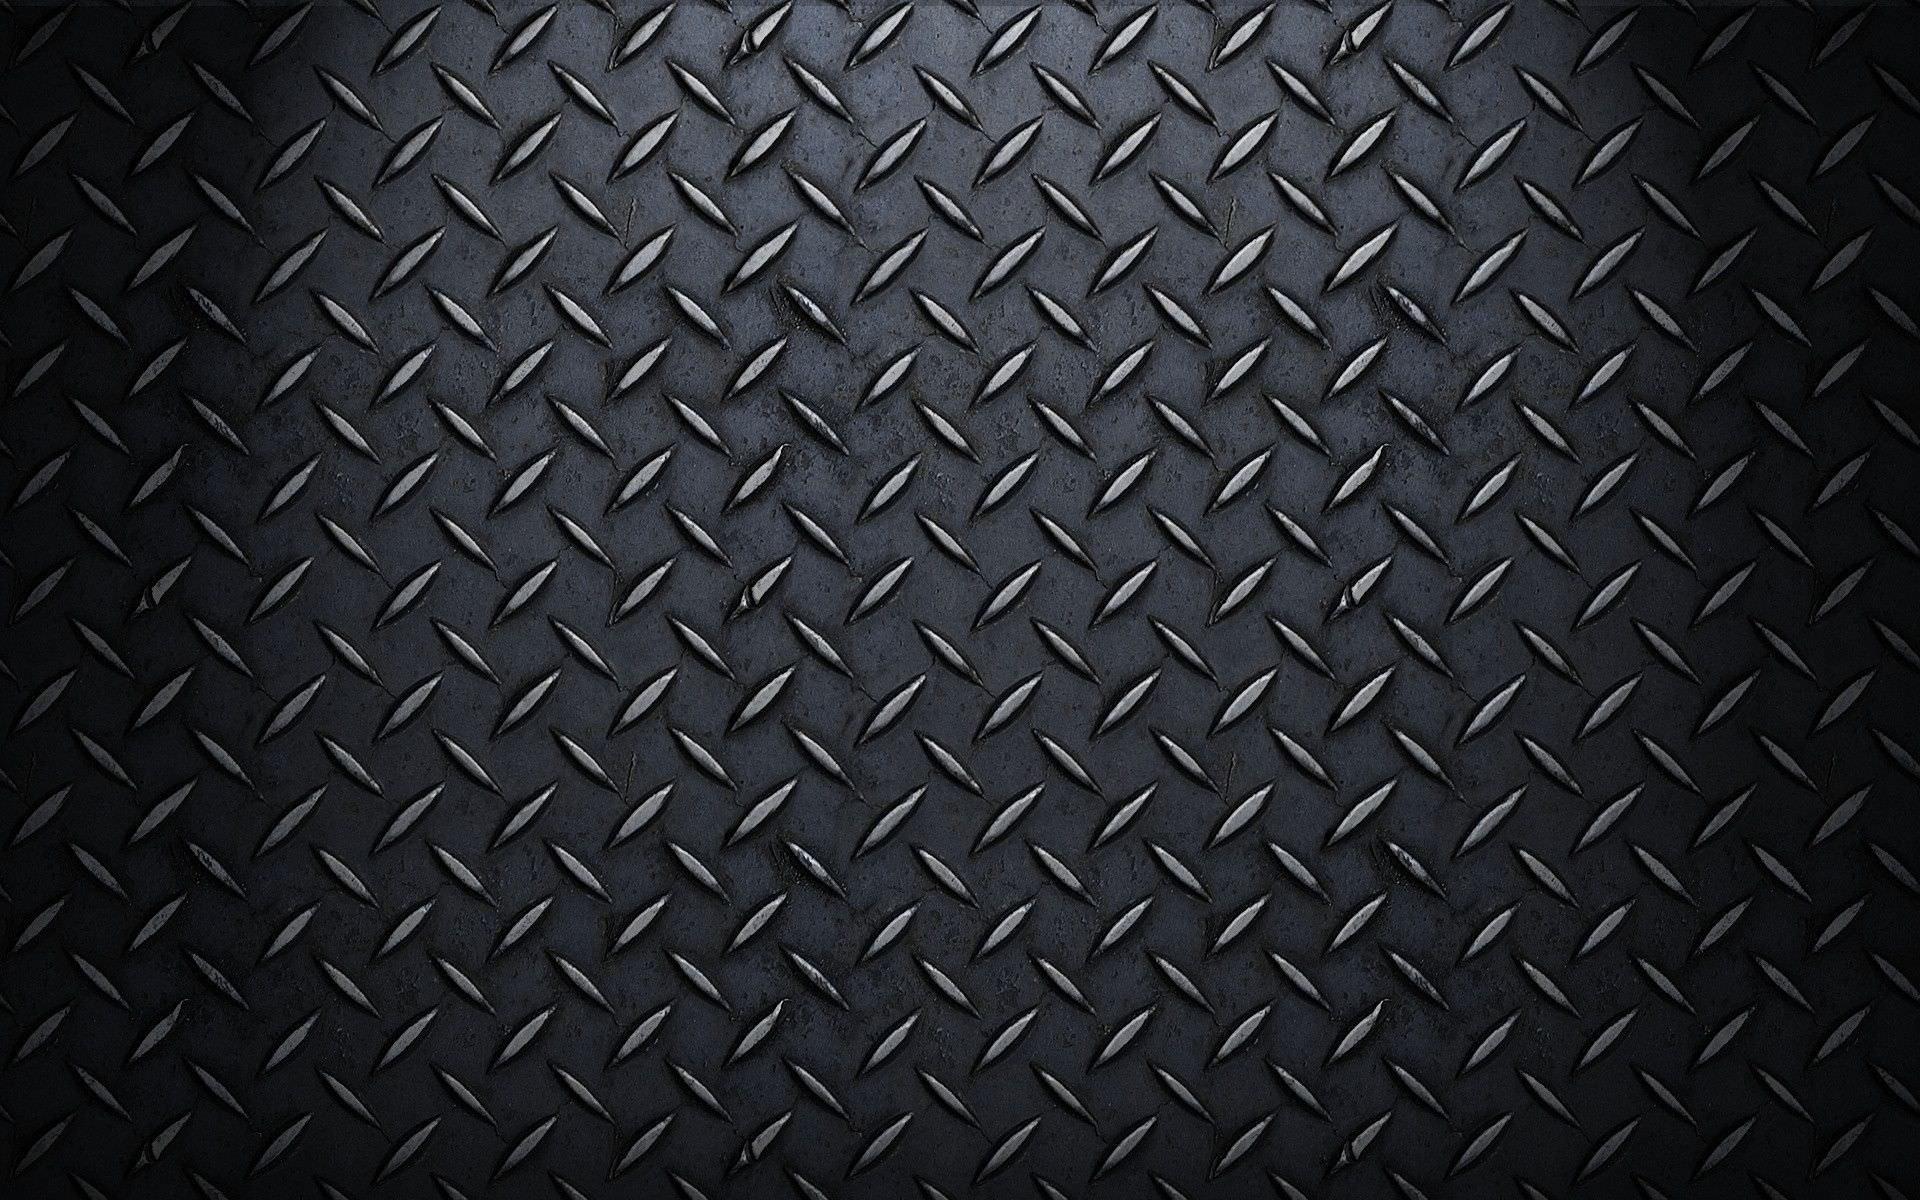 Dark Plain Metal Background